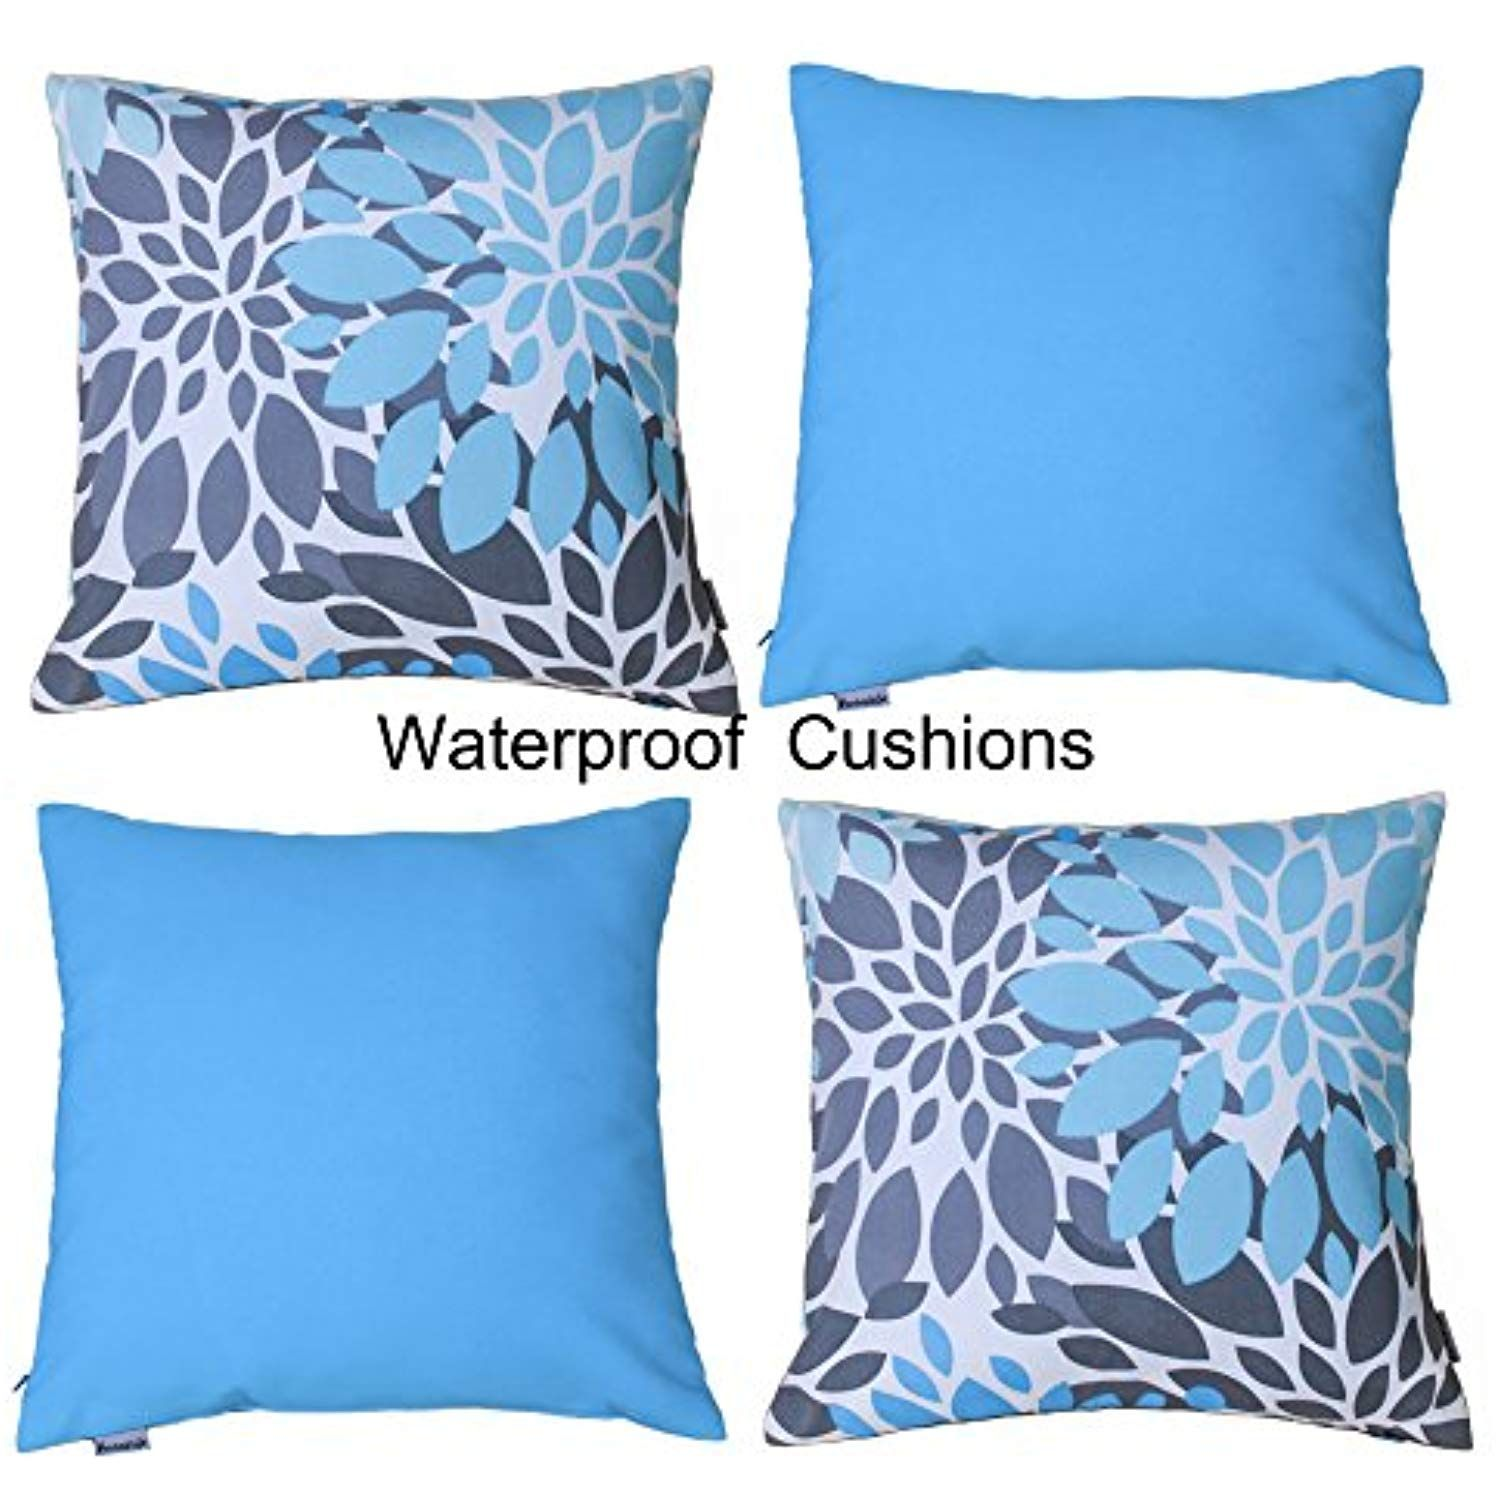 Vantextile Throw Pillow Covers Case Outdoor Water Resistant Outside Waterproof Cushion Decorative 18x18 I Waterproof Cushions Throw Pillows Throw Pillow Covers